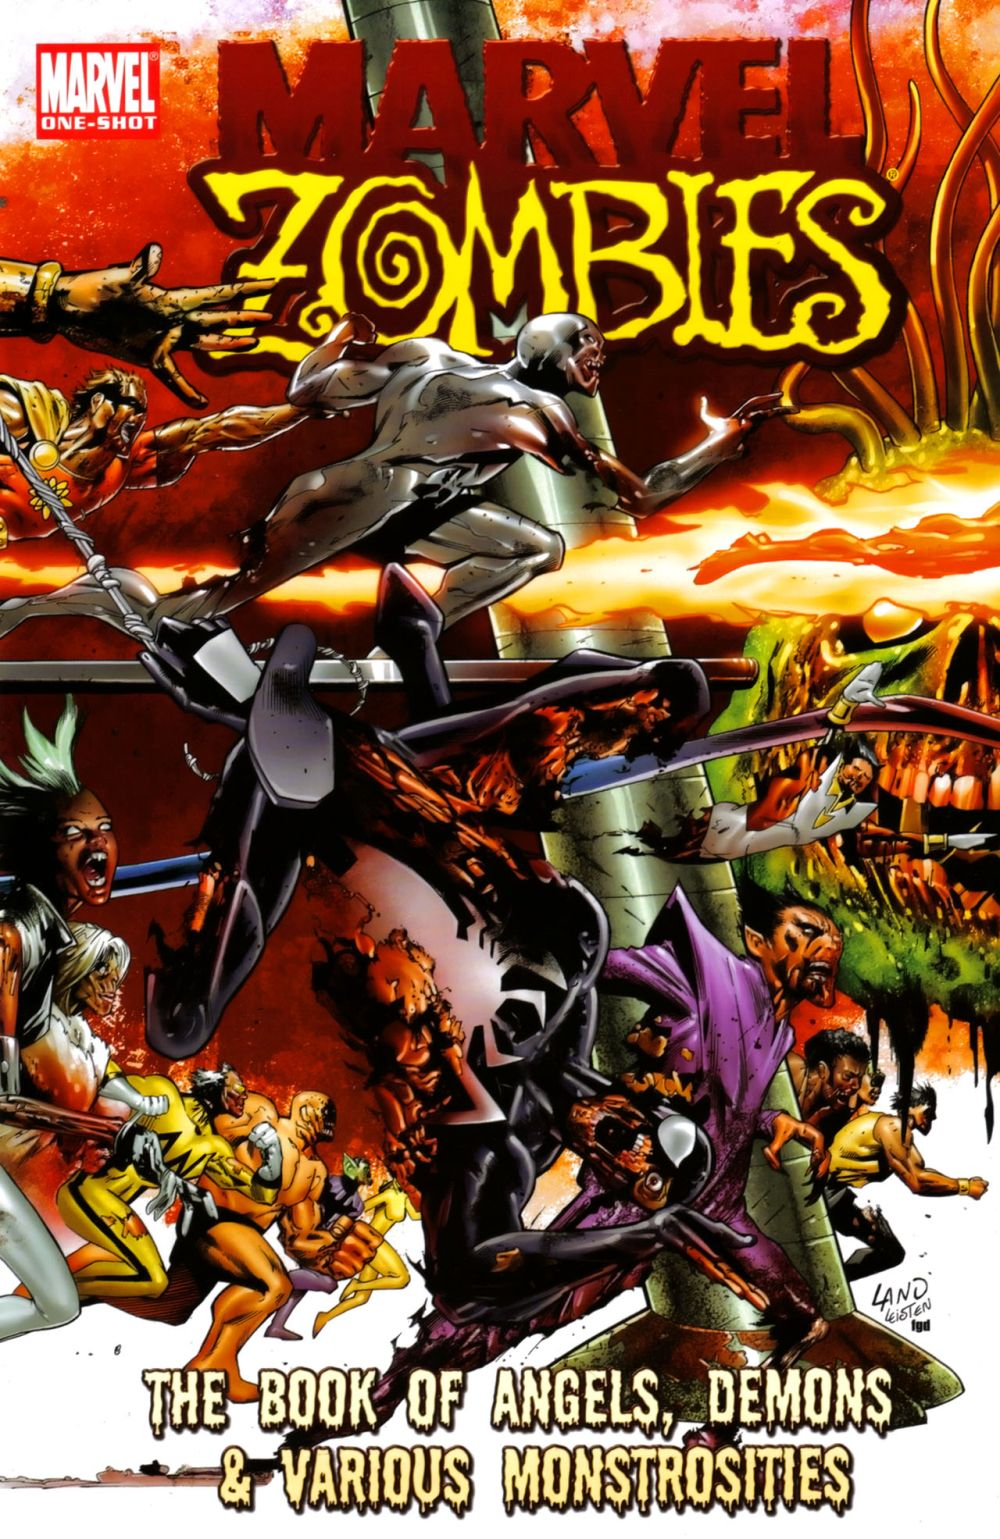 Marvel Zombies- Book Of Angels, Demons and Other Monstrosities [Marvel] OS1 0001.jpg